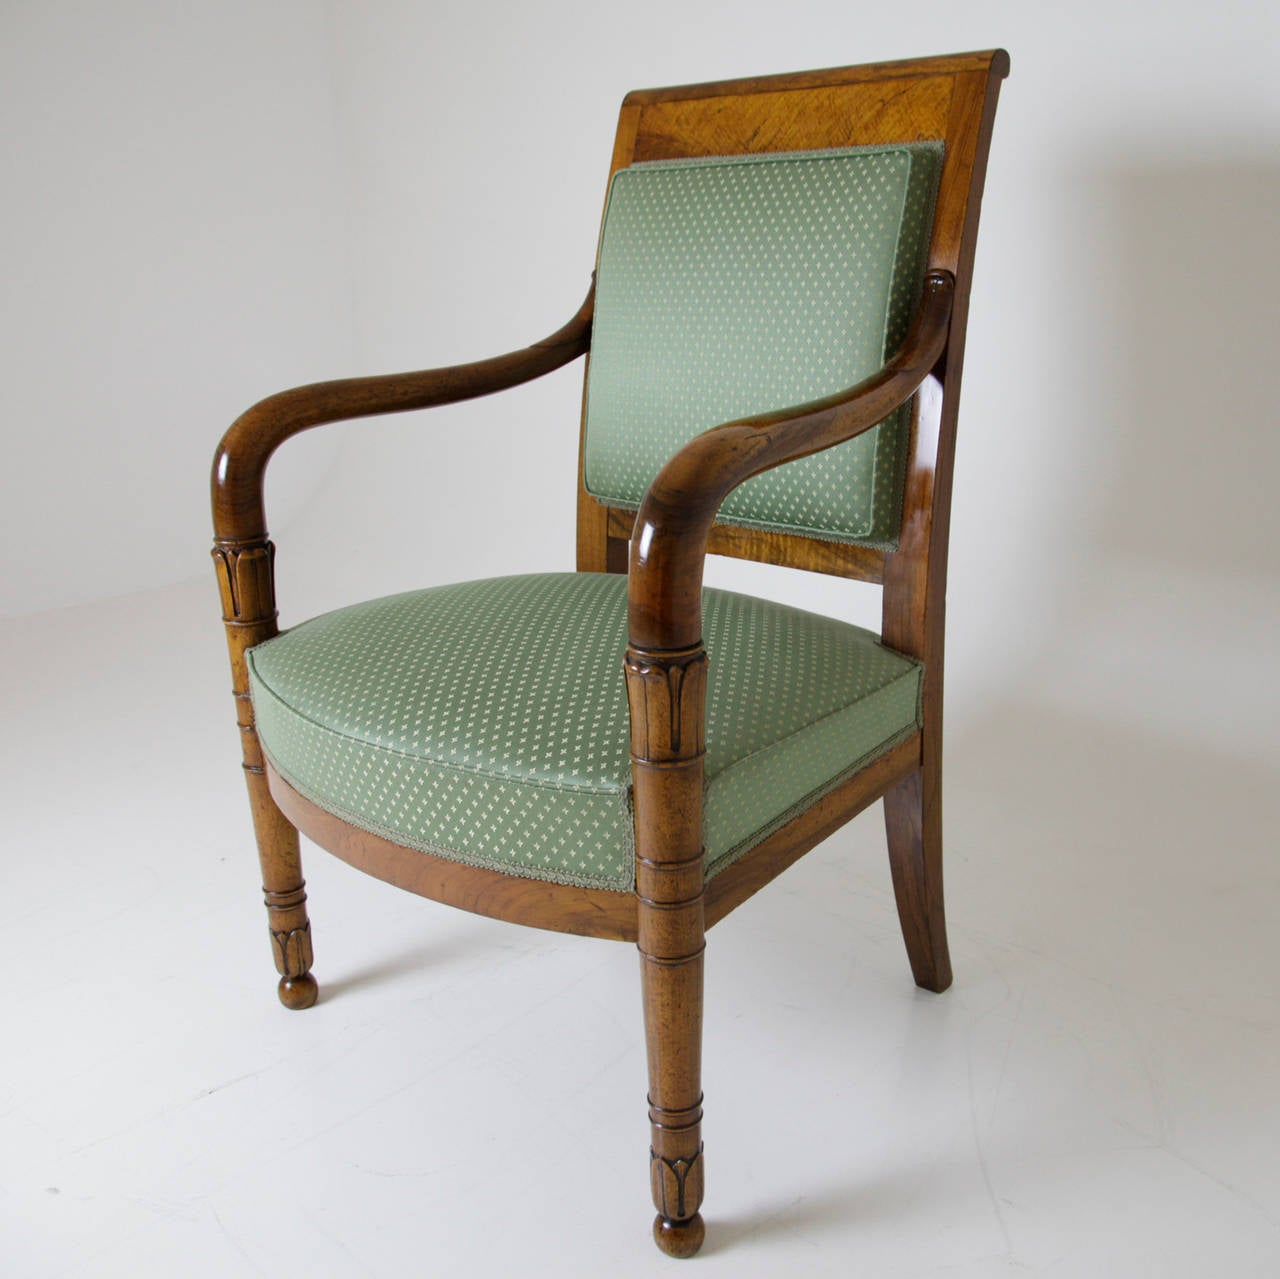 dating french furniture A lesson on early brittany-style furniture kate van hoof september 4, 2013 according to our pals at good ol' wikipedia, the french province of brittany.